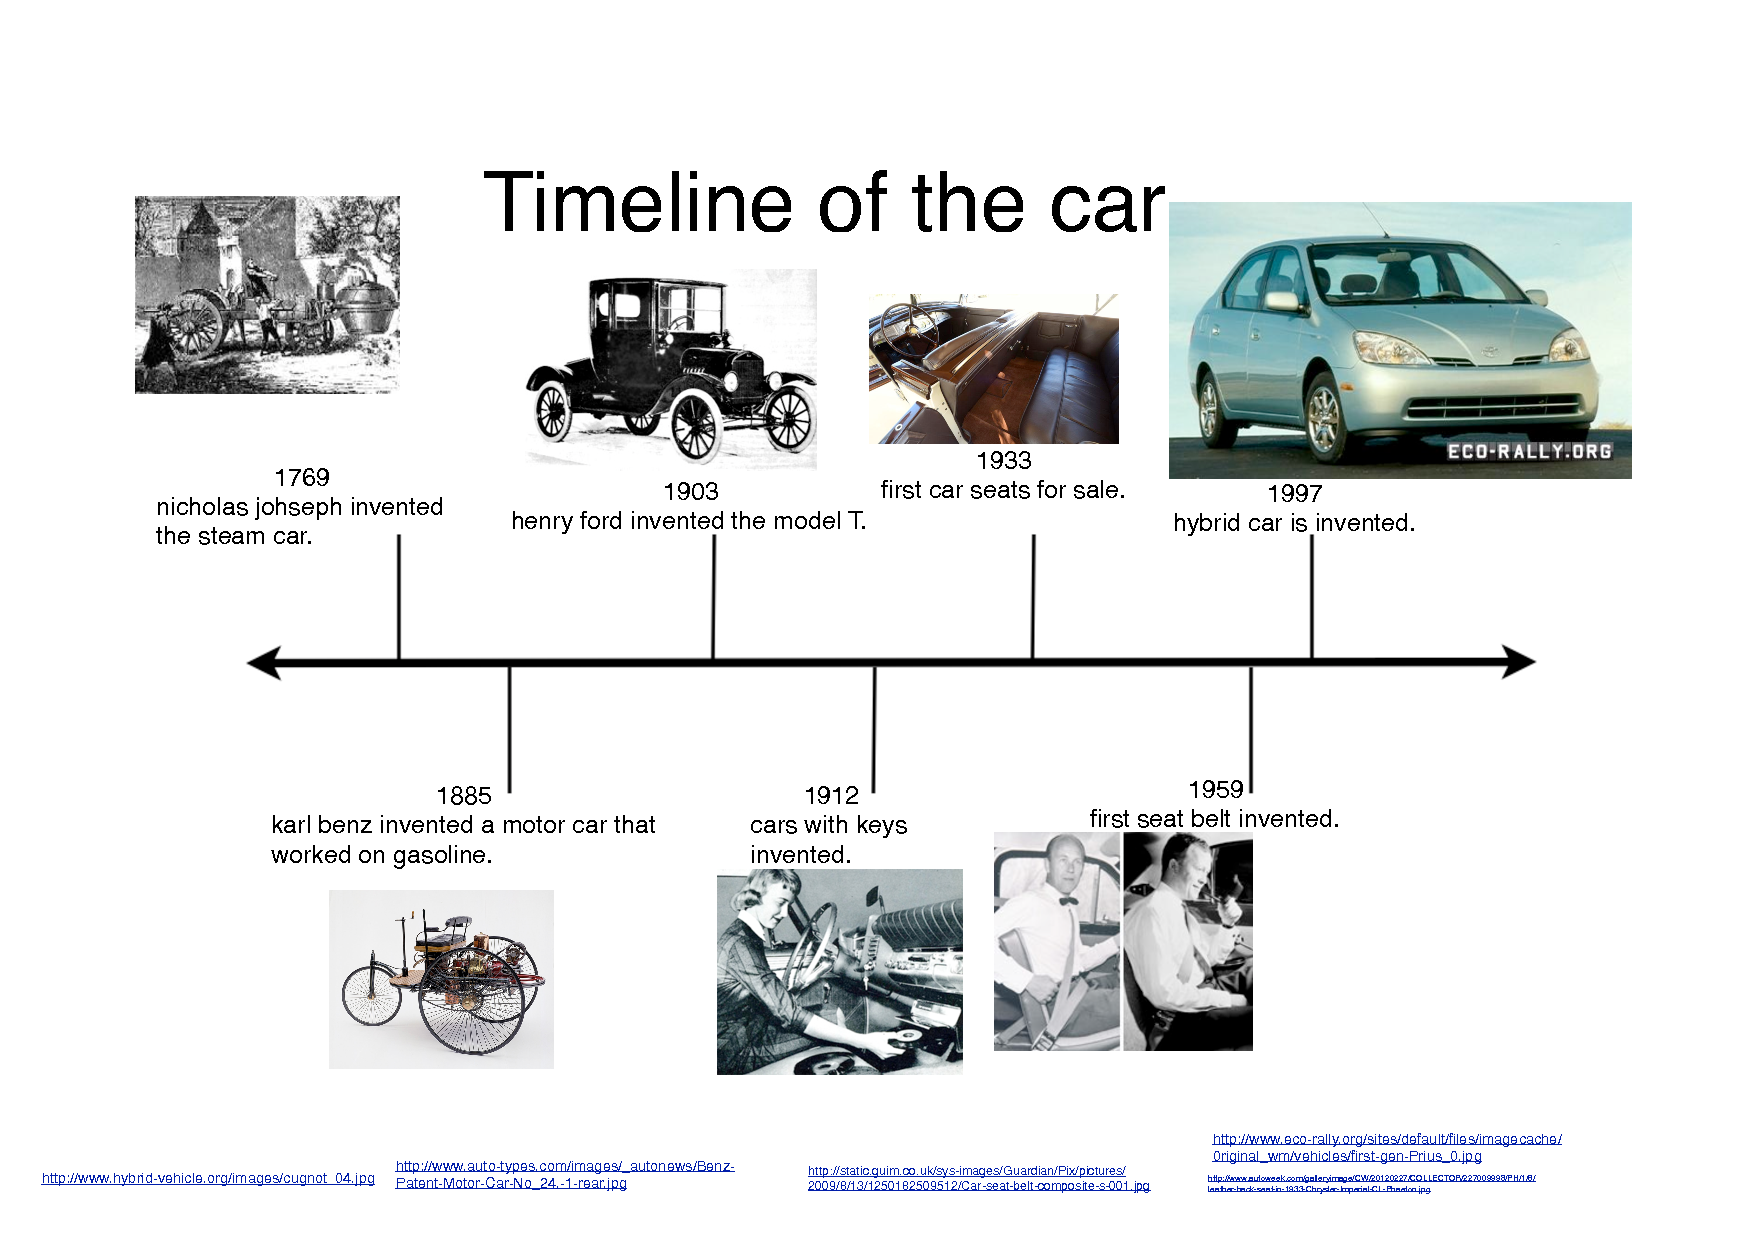 Automobile First Motor Car | Timeline of the car - Kidblog | Social ...